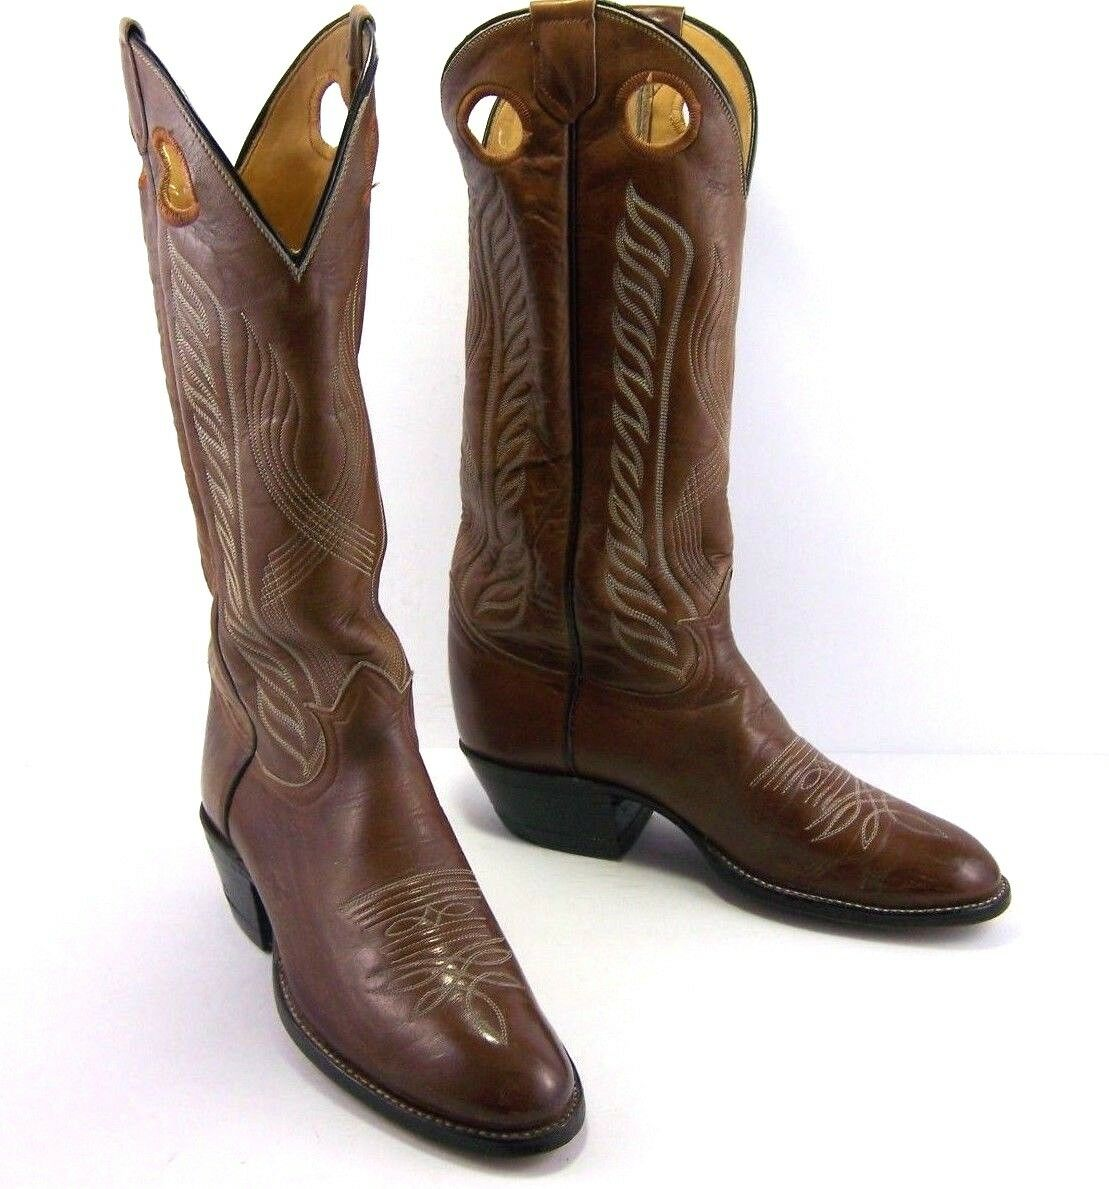 Tony Lama  Cowboy Boots Western Mens 6445 Size 8 B Brown Leather 14  Shaft  wholesale